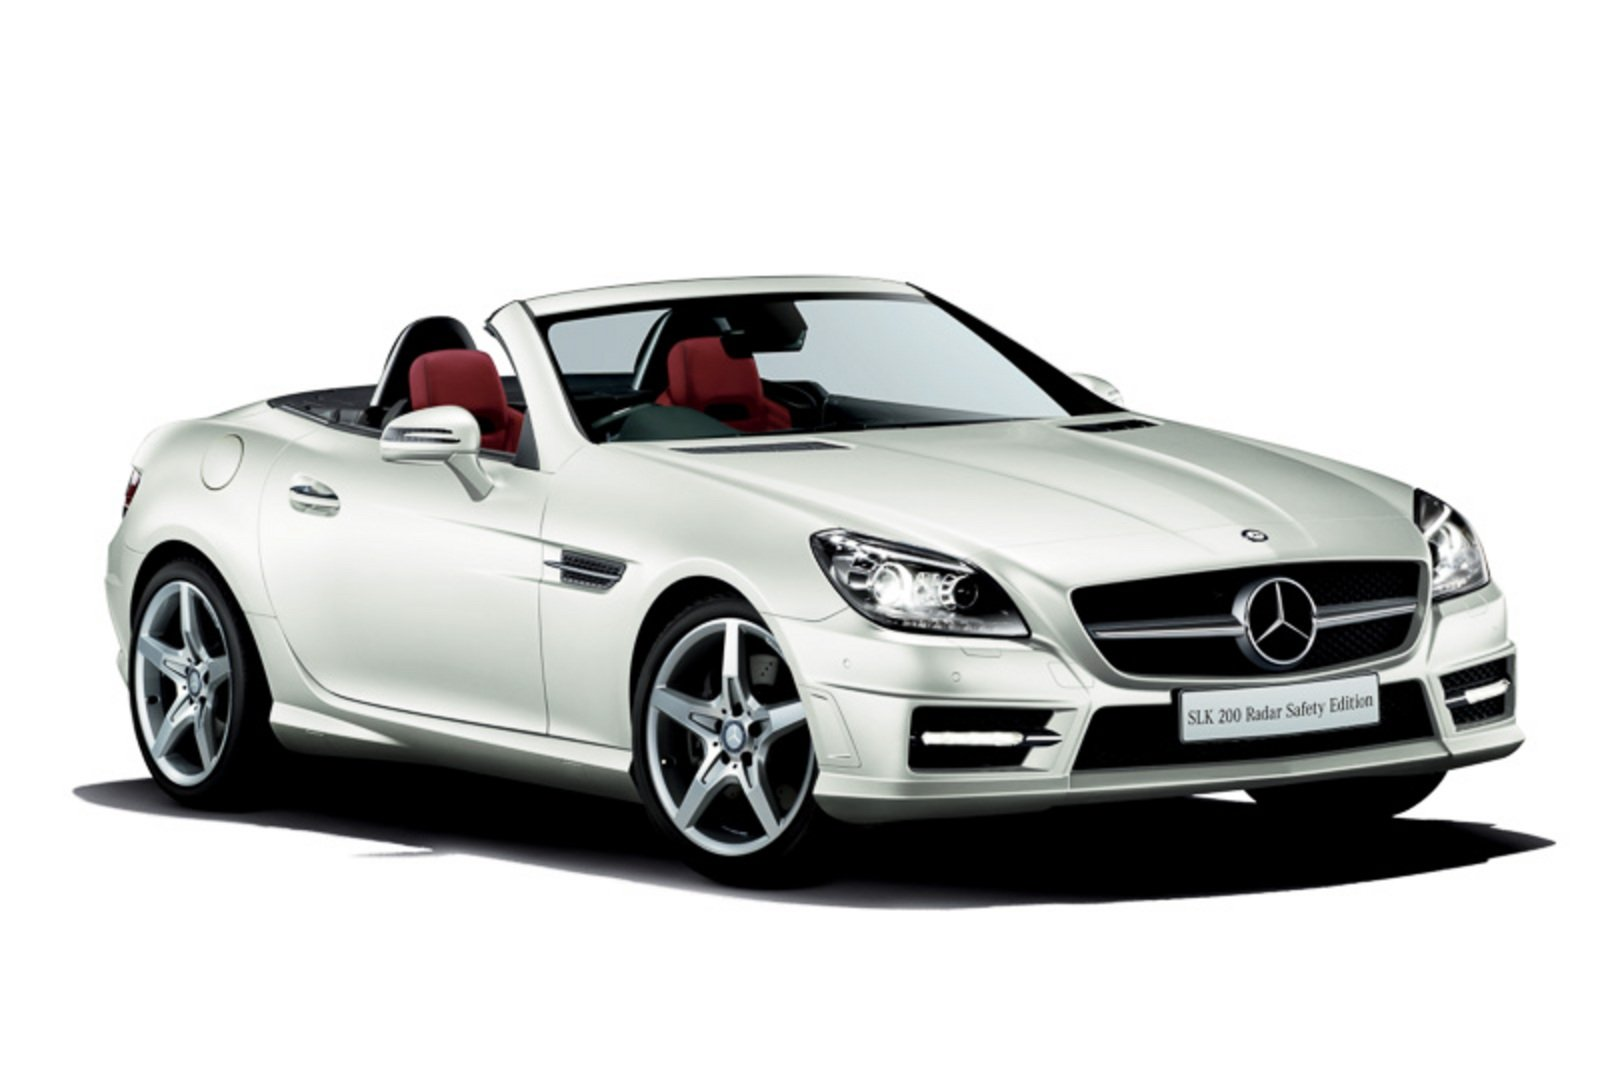 2013 mercedes benz slk 200 radar safety edition review. Black Bedroom Furniture Sets. Home Design Ideas